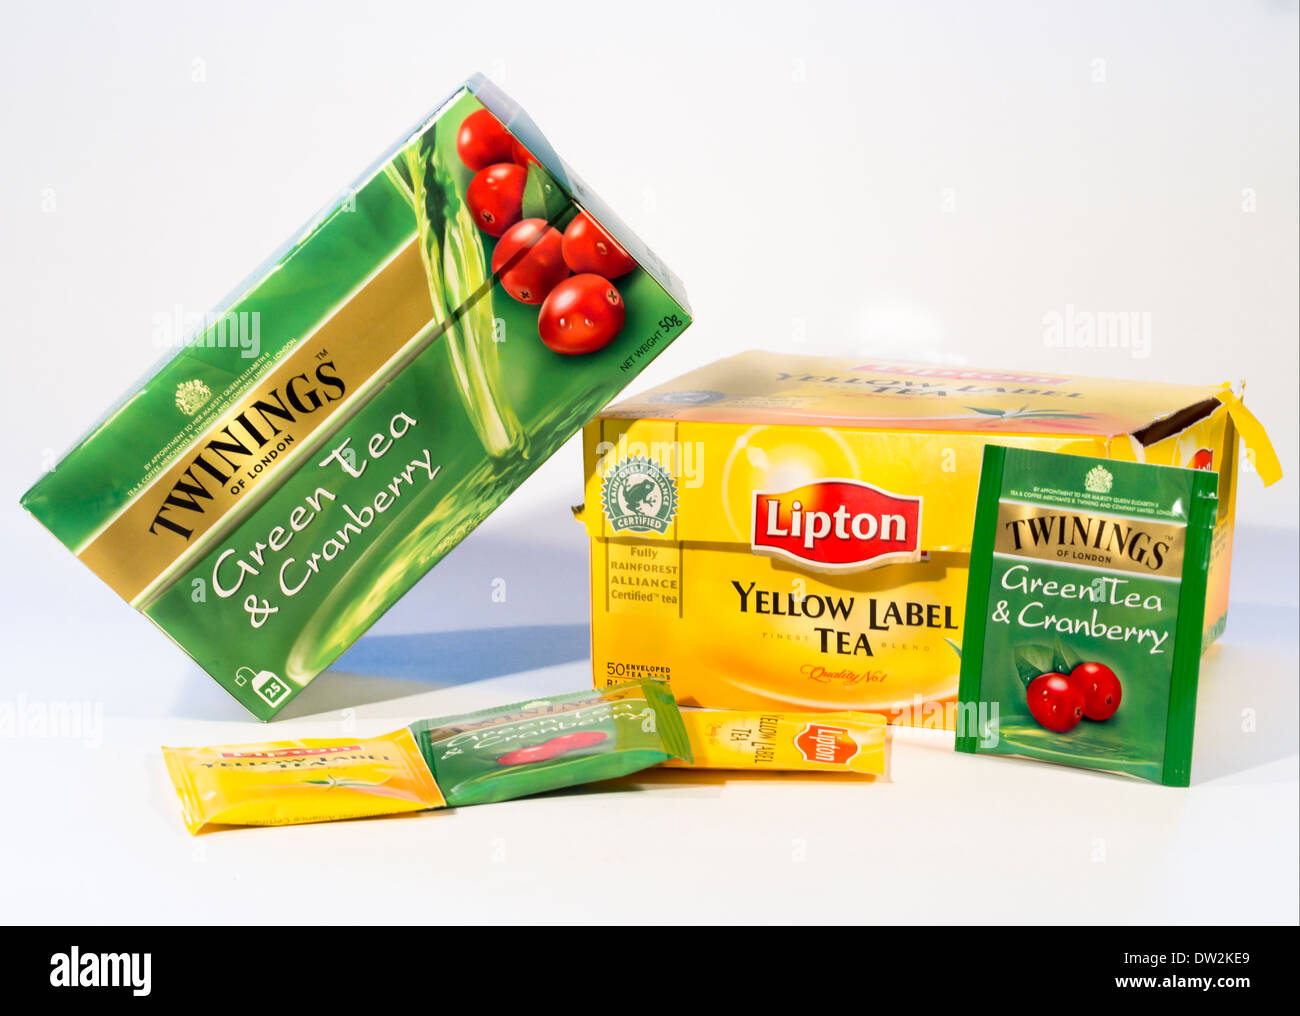 Lipton or Twining, black tea or green tea, yellow or green boxes and teabags on white background - Stock Image